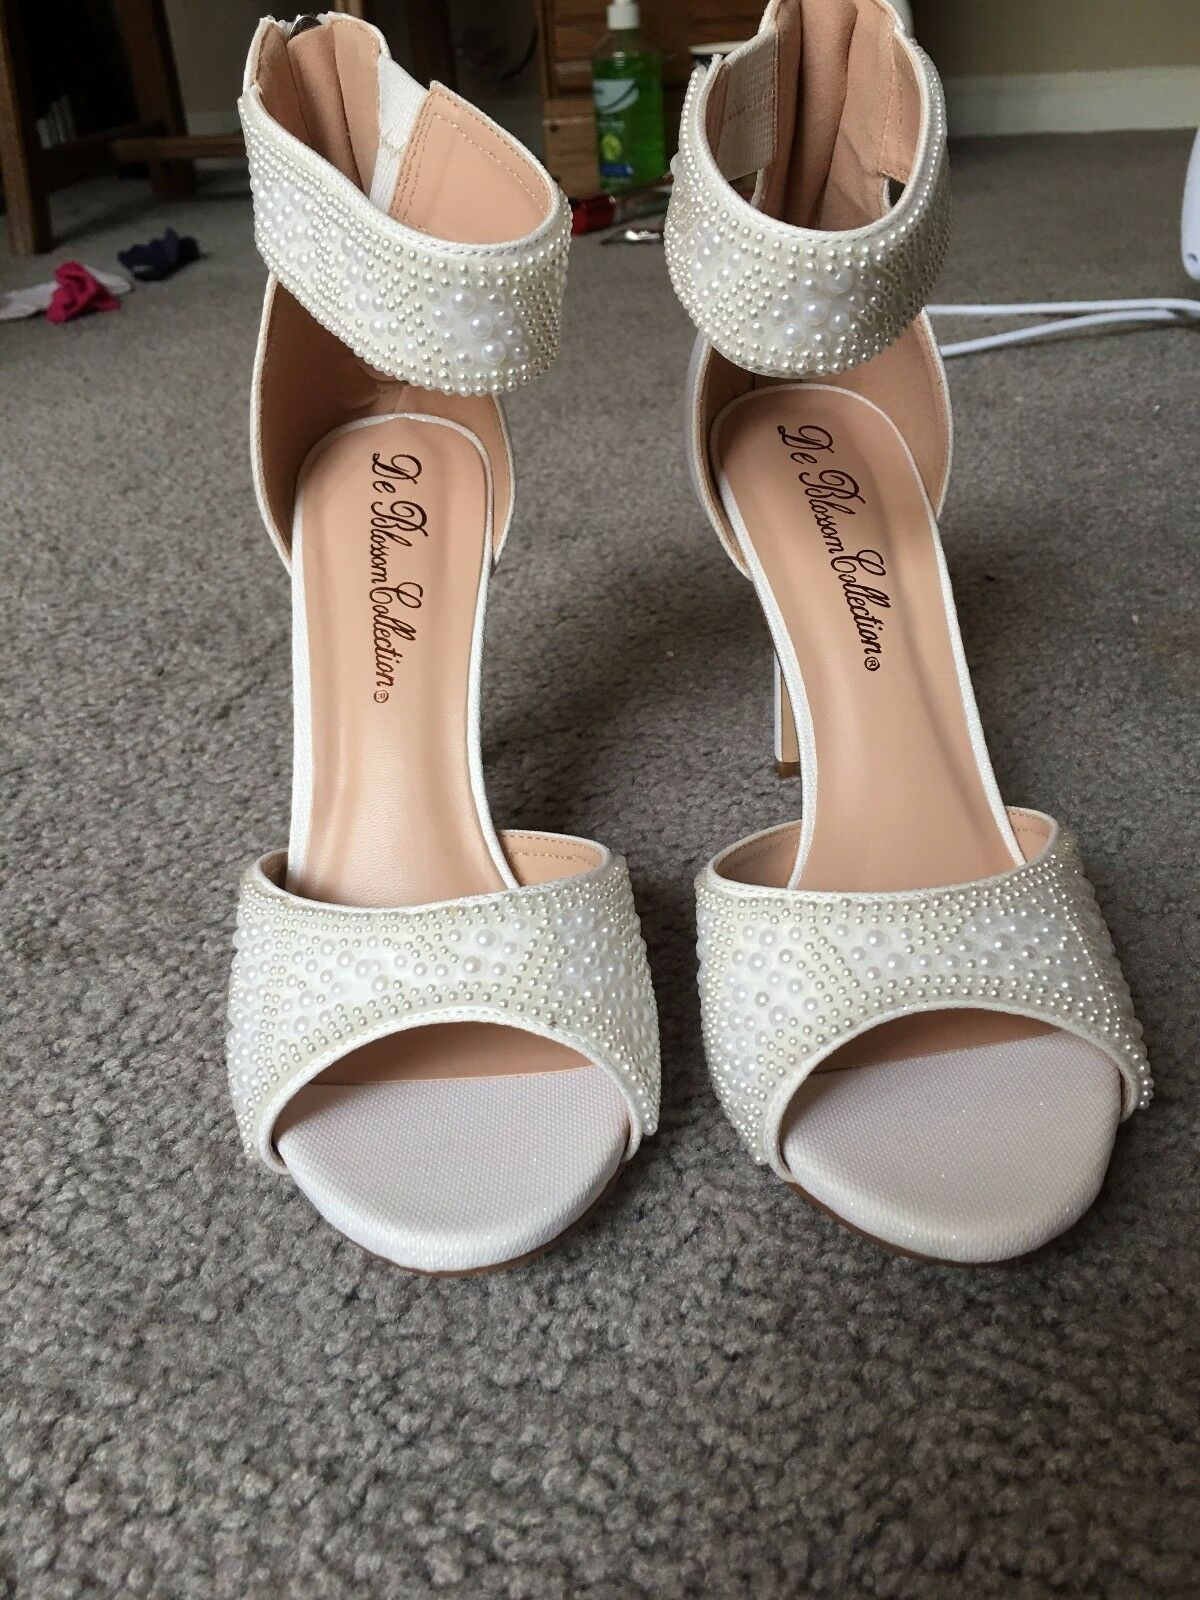 women's wedding bridal shoes, white pearl, size 8, never before worn